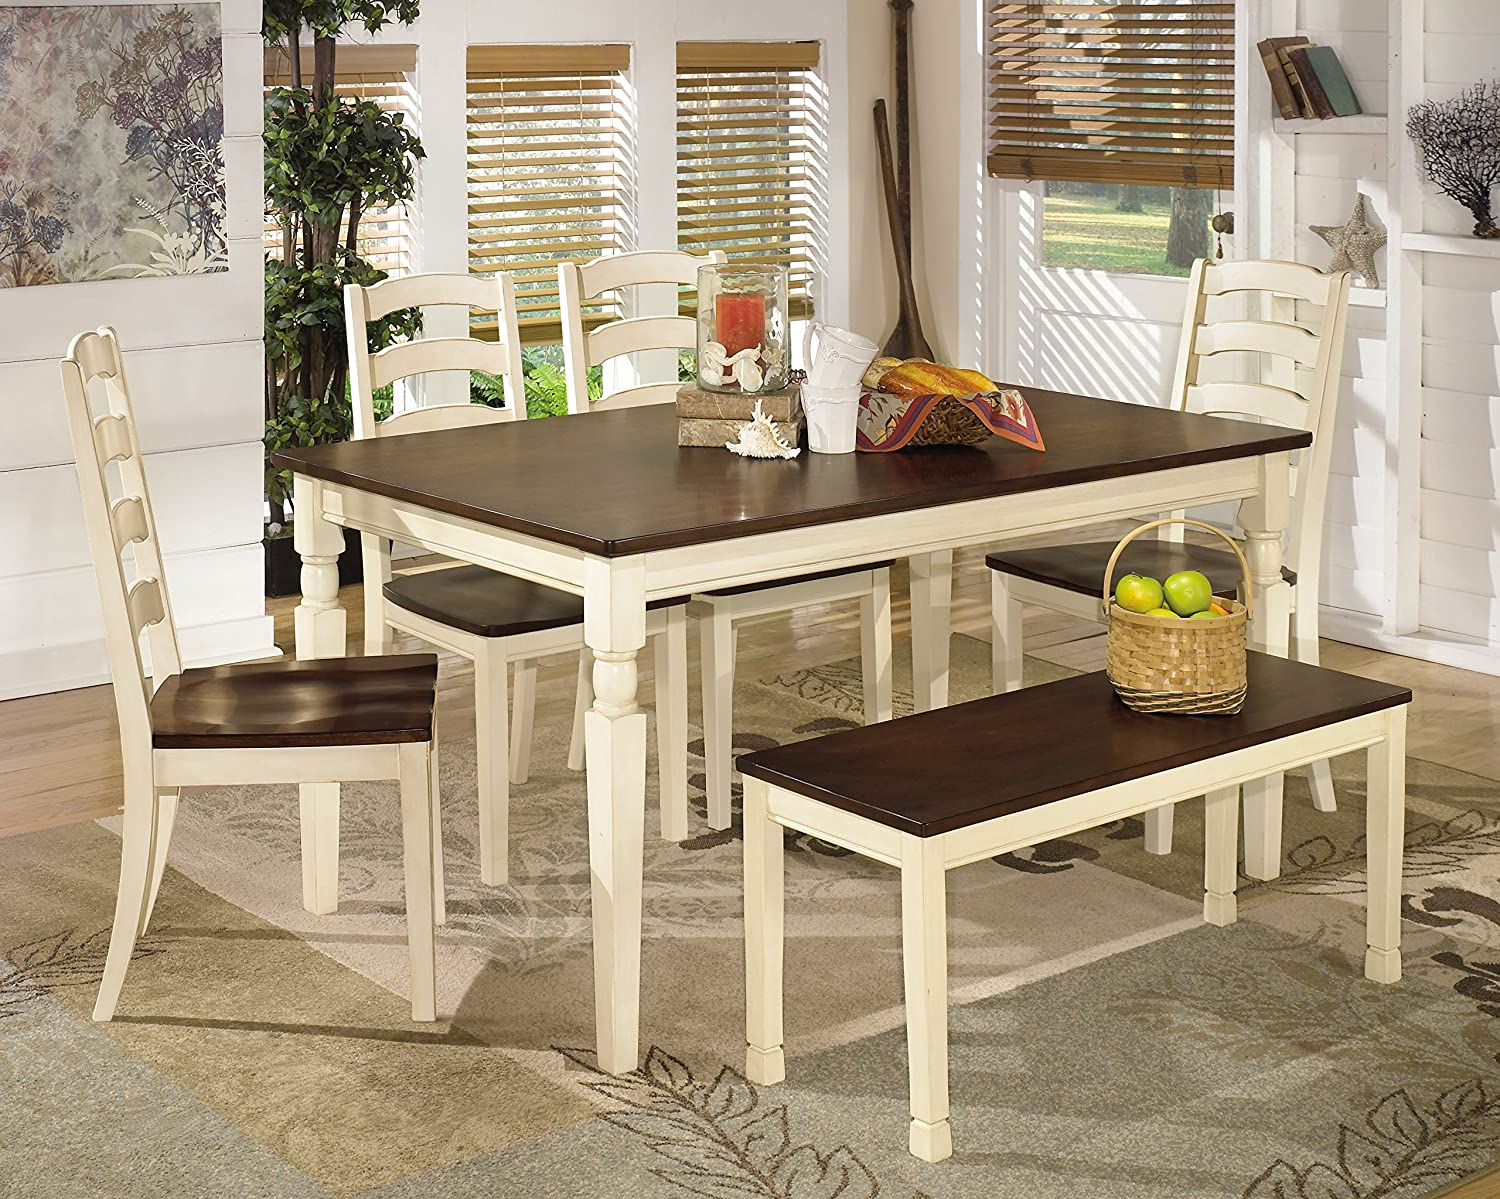 amazon com ashley furniture signature design whitesburg dining amazon com ashley furniture signature design whitesburg dining room table rectangular vintage casual brown cottage white tables